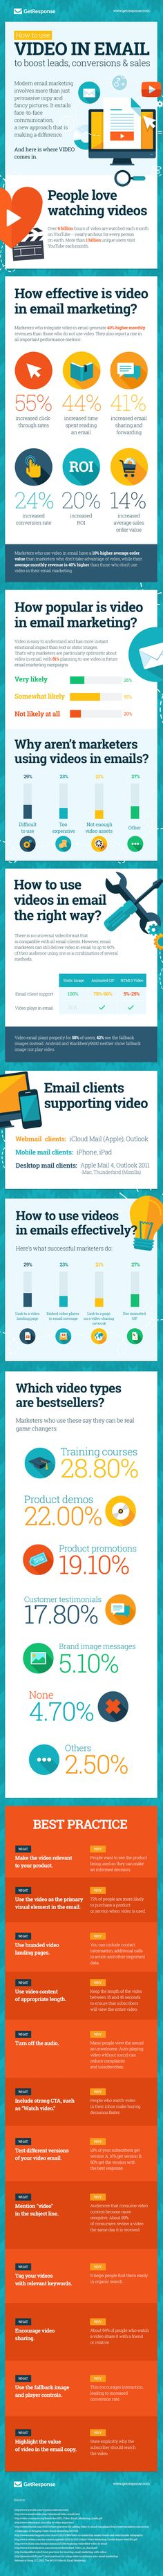 Video in Email Here is What You Need to Know   socialmouths.com/blog/2014/07/08/video-in-email/